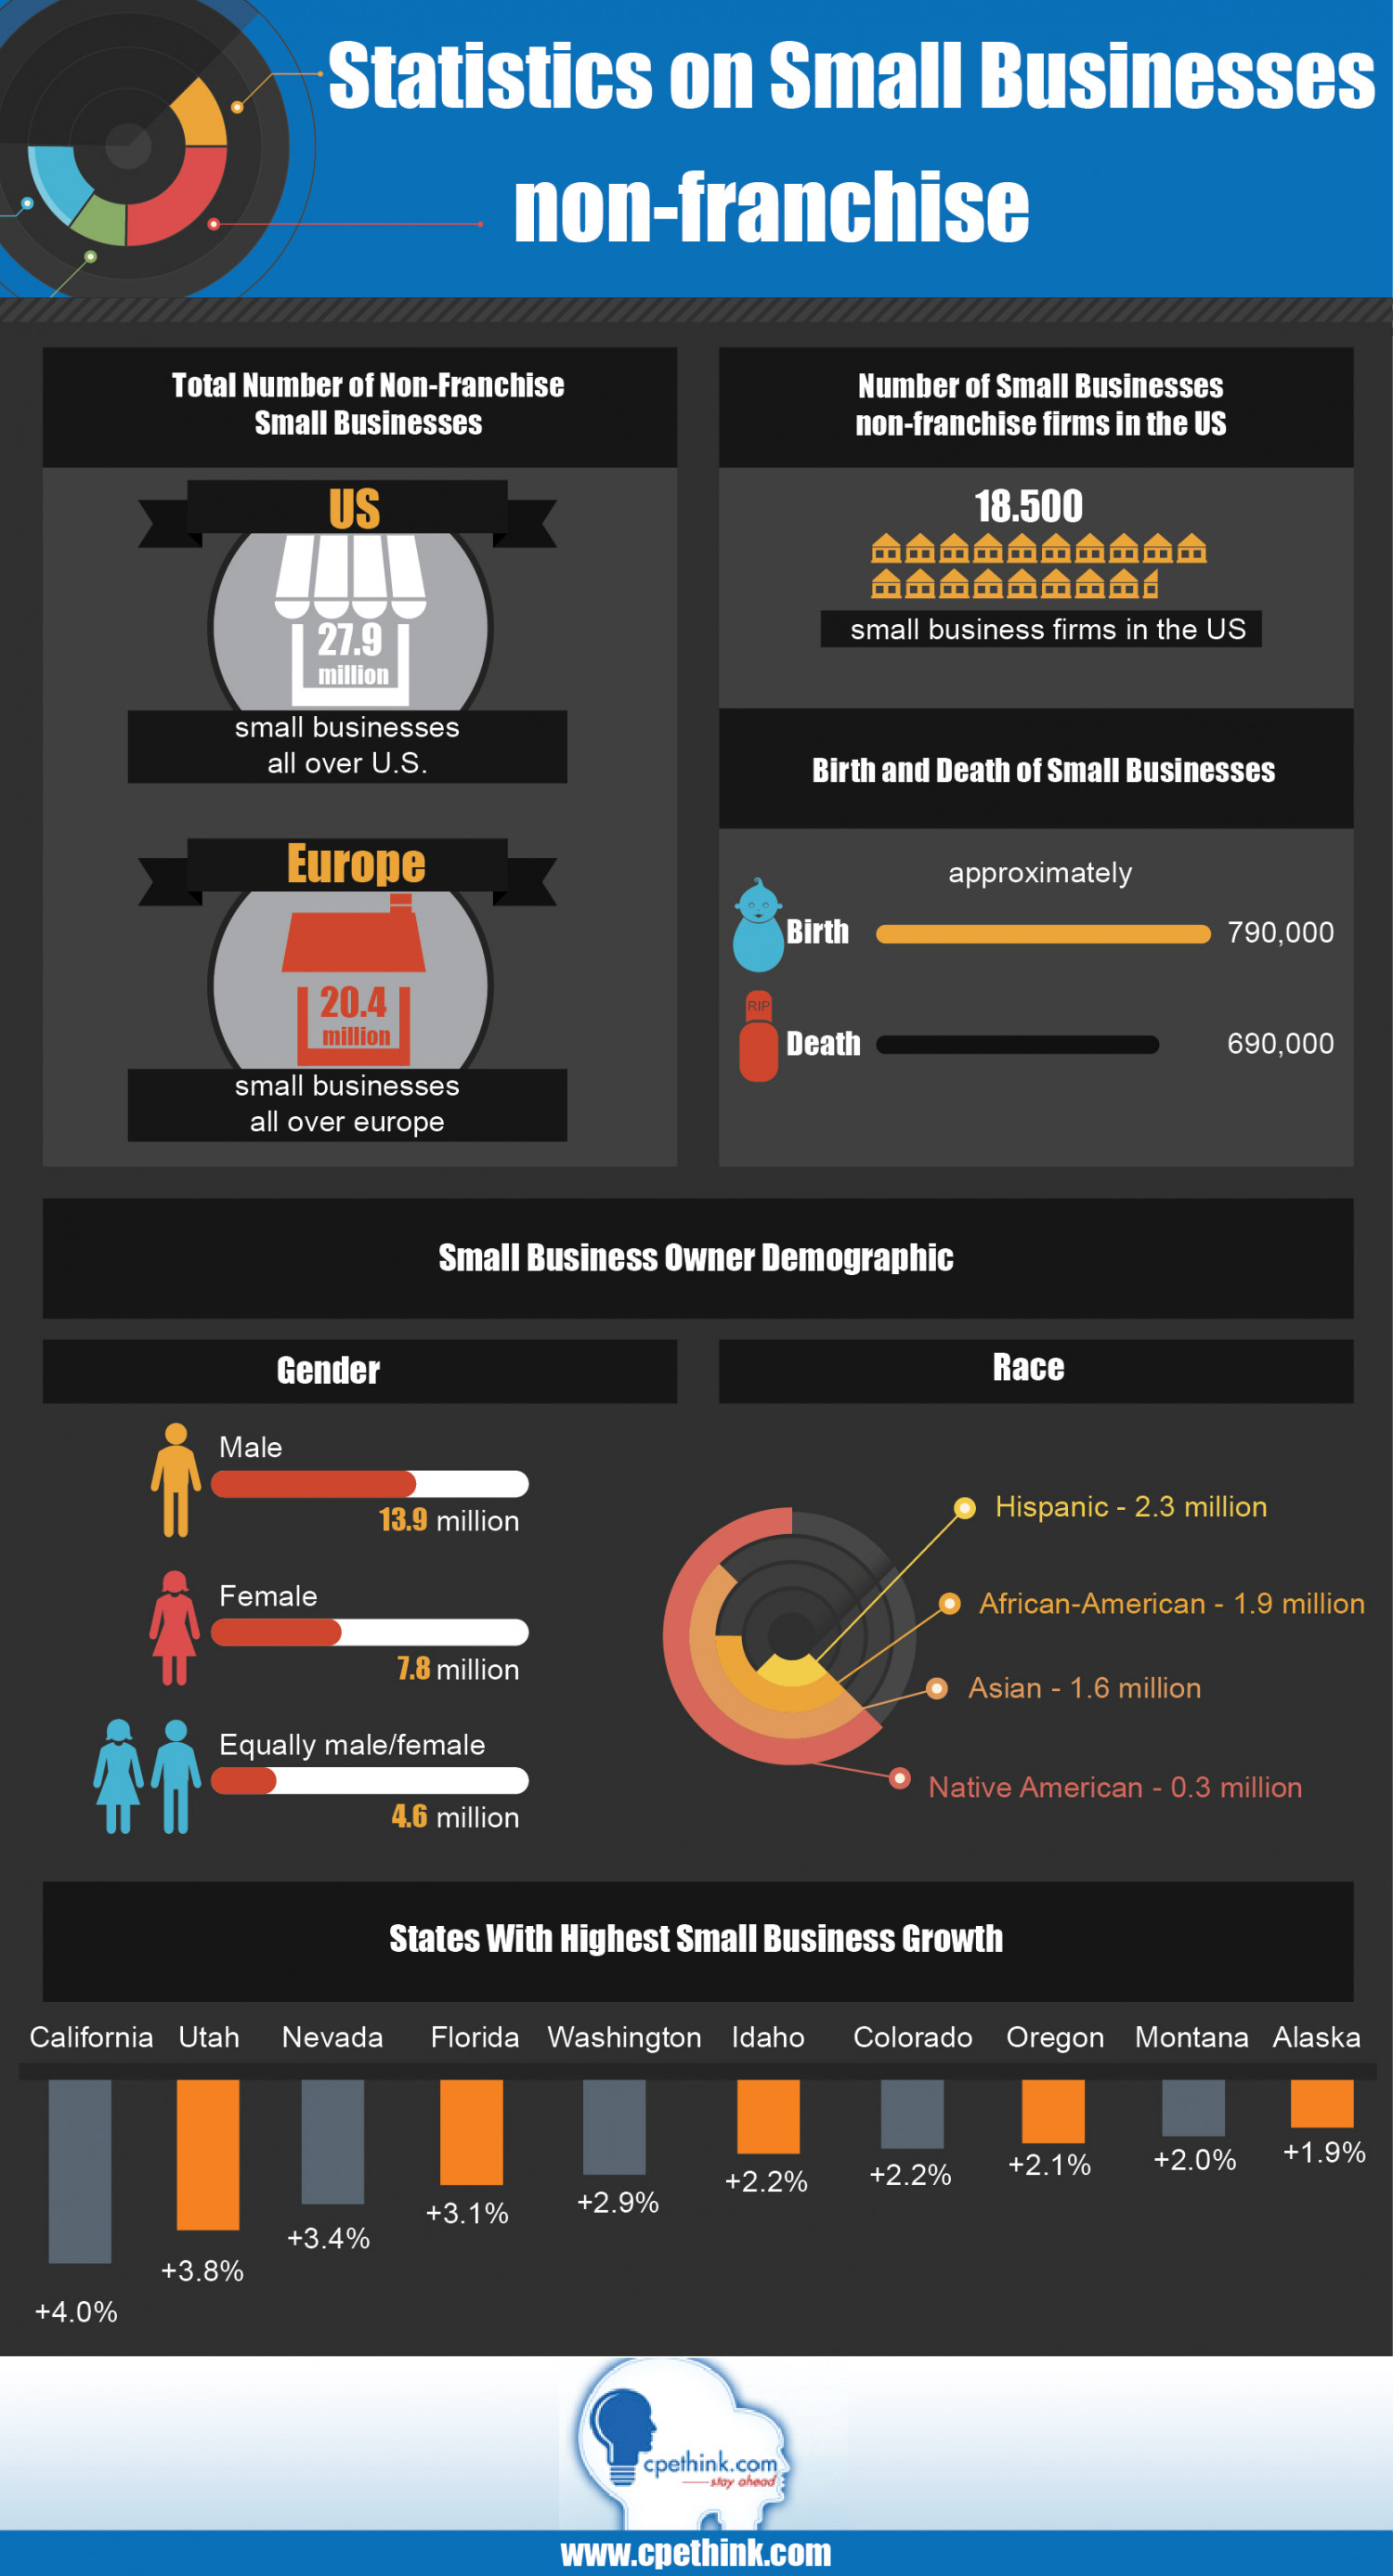 Statistics on Small Businesses Non-Franchise Infographic